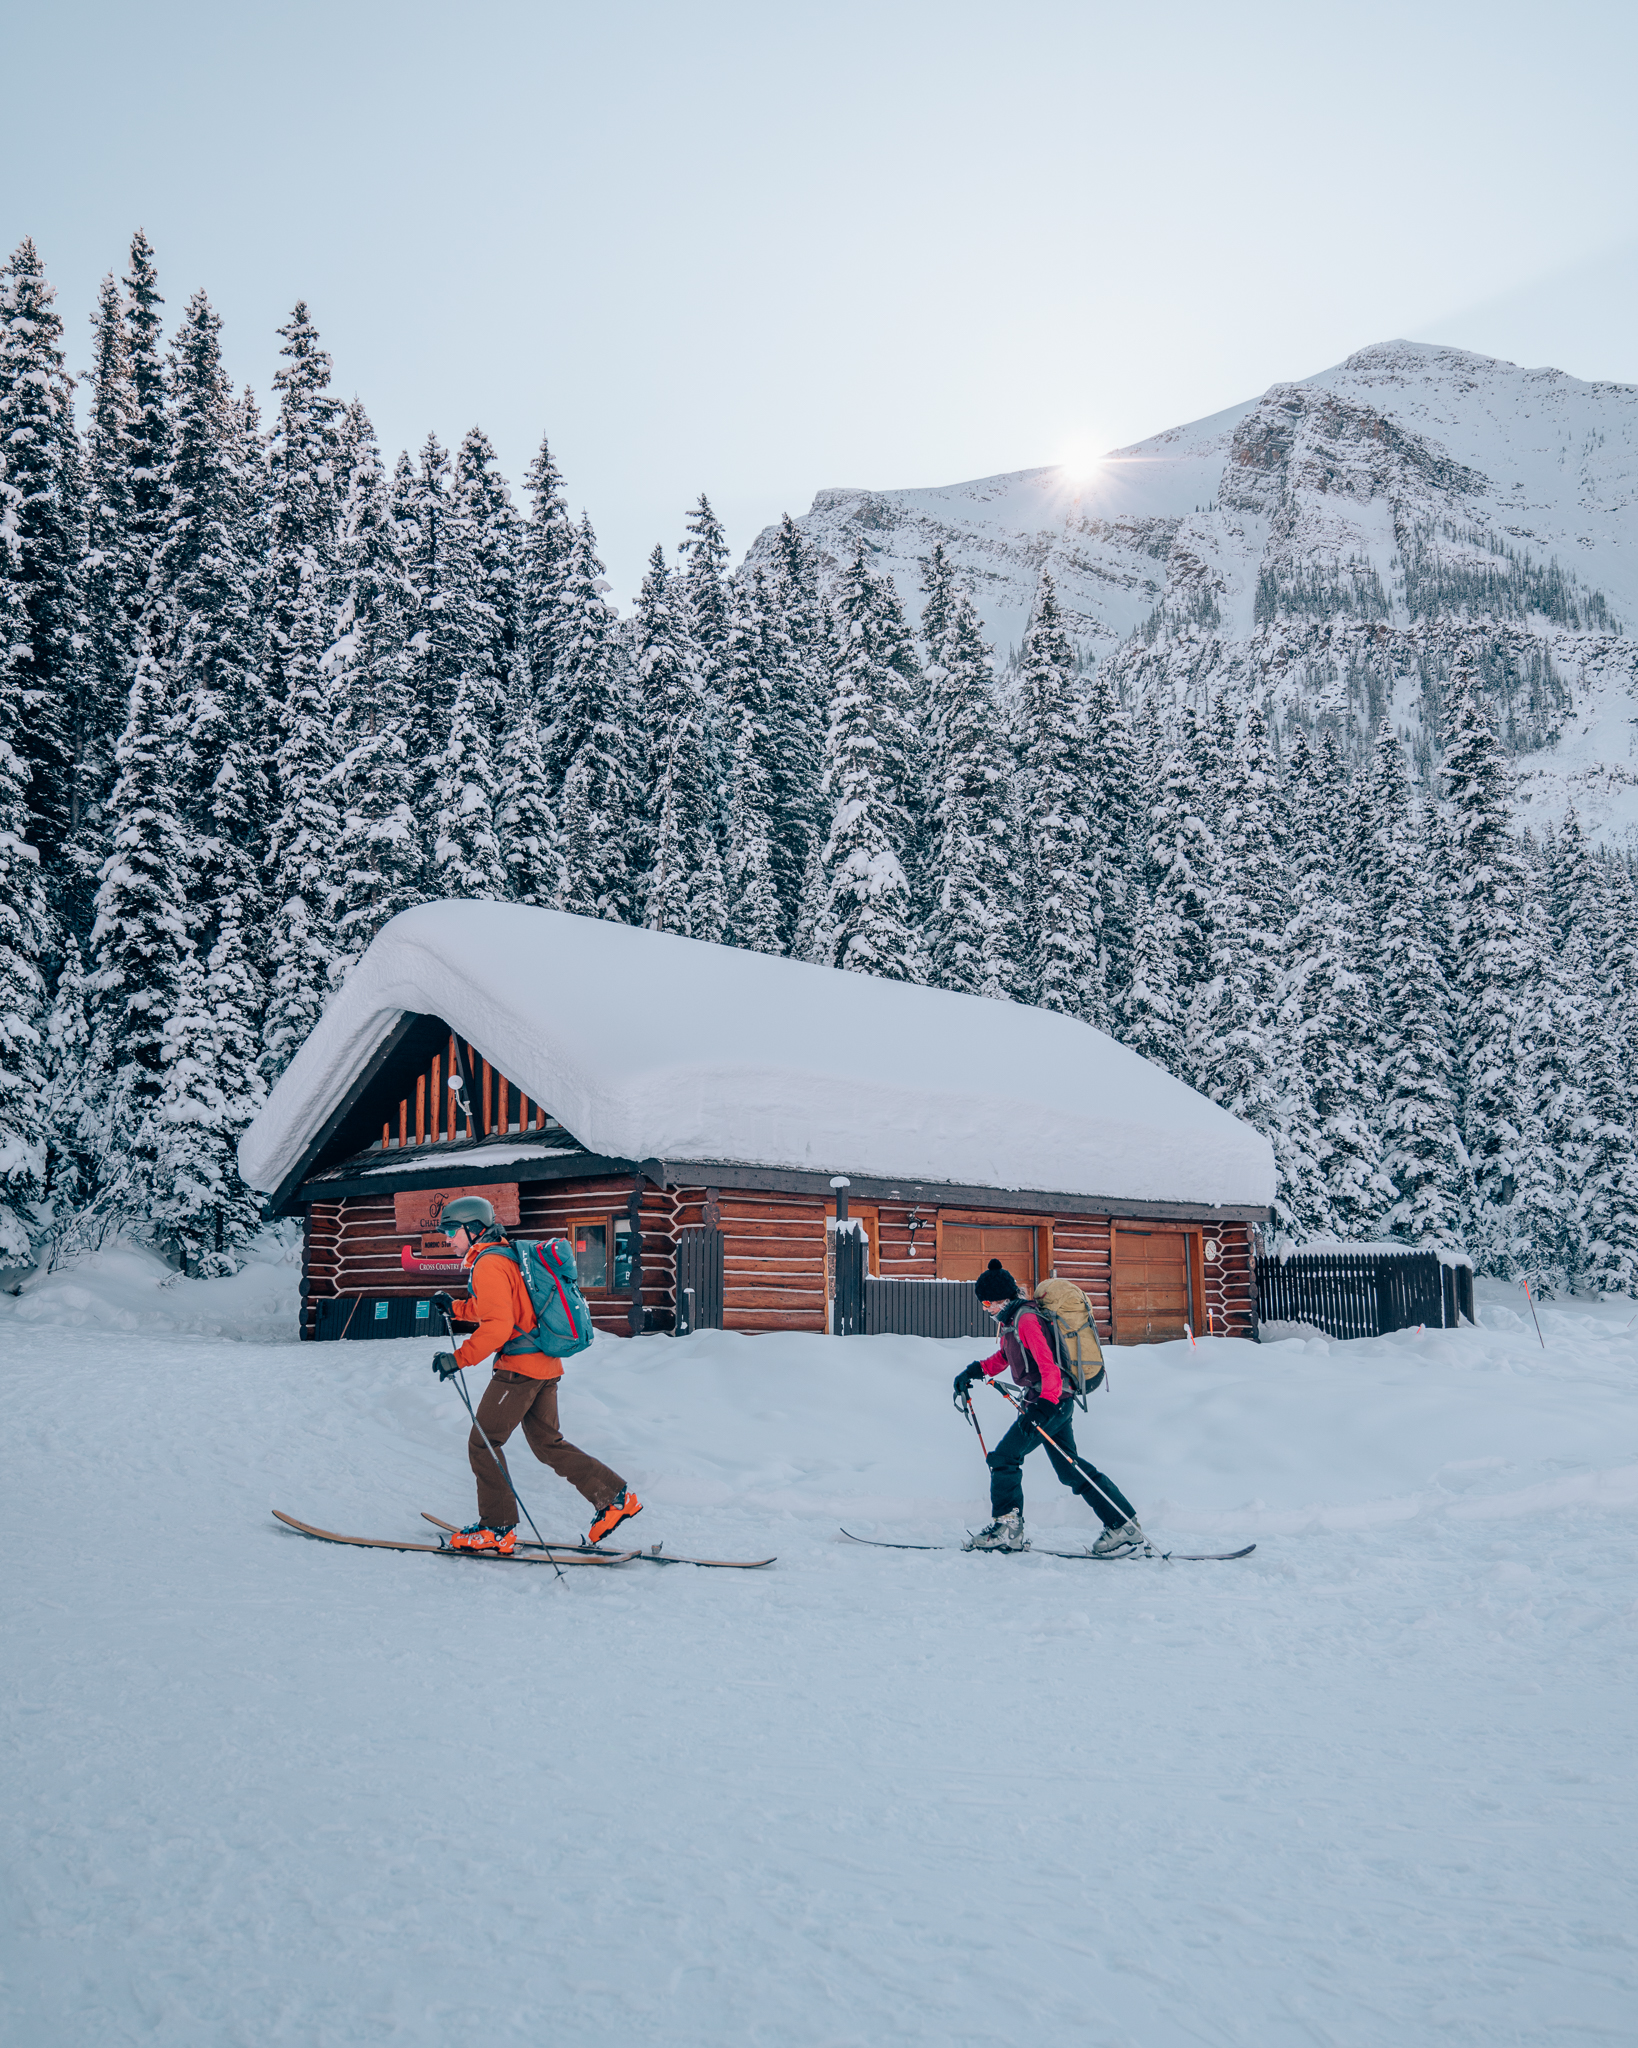 Skiing at the Fairmont Chateau Lake Louise